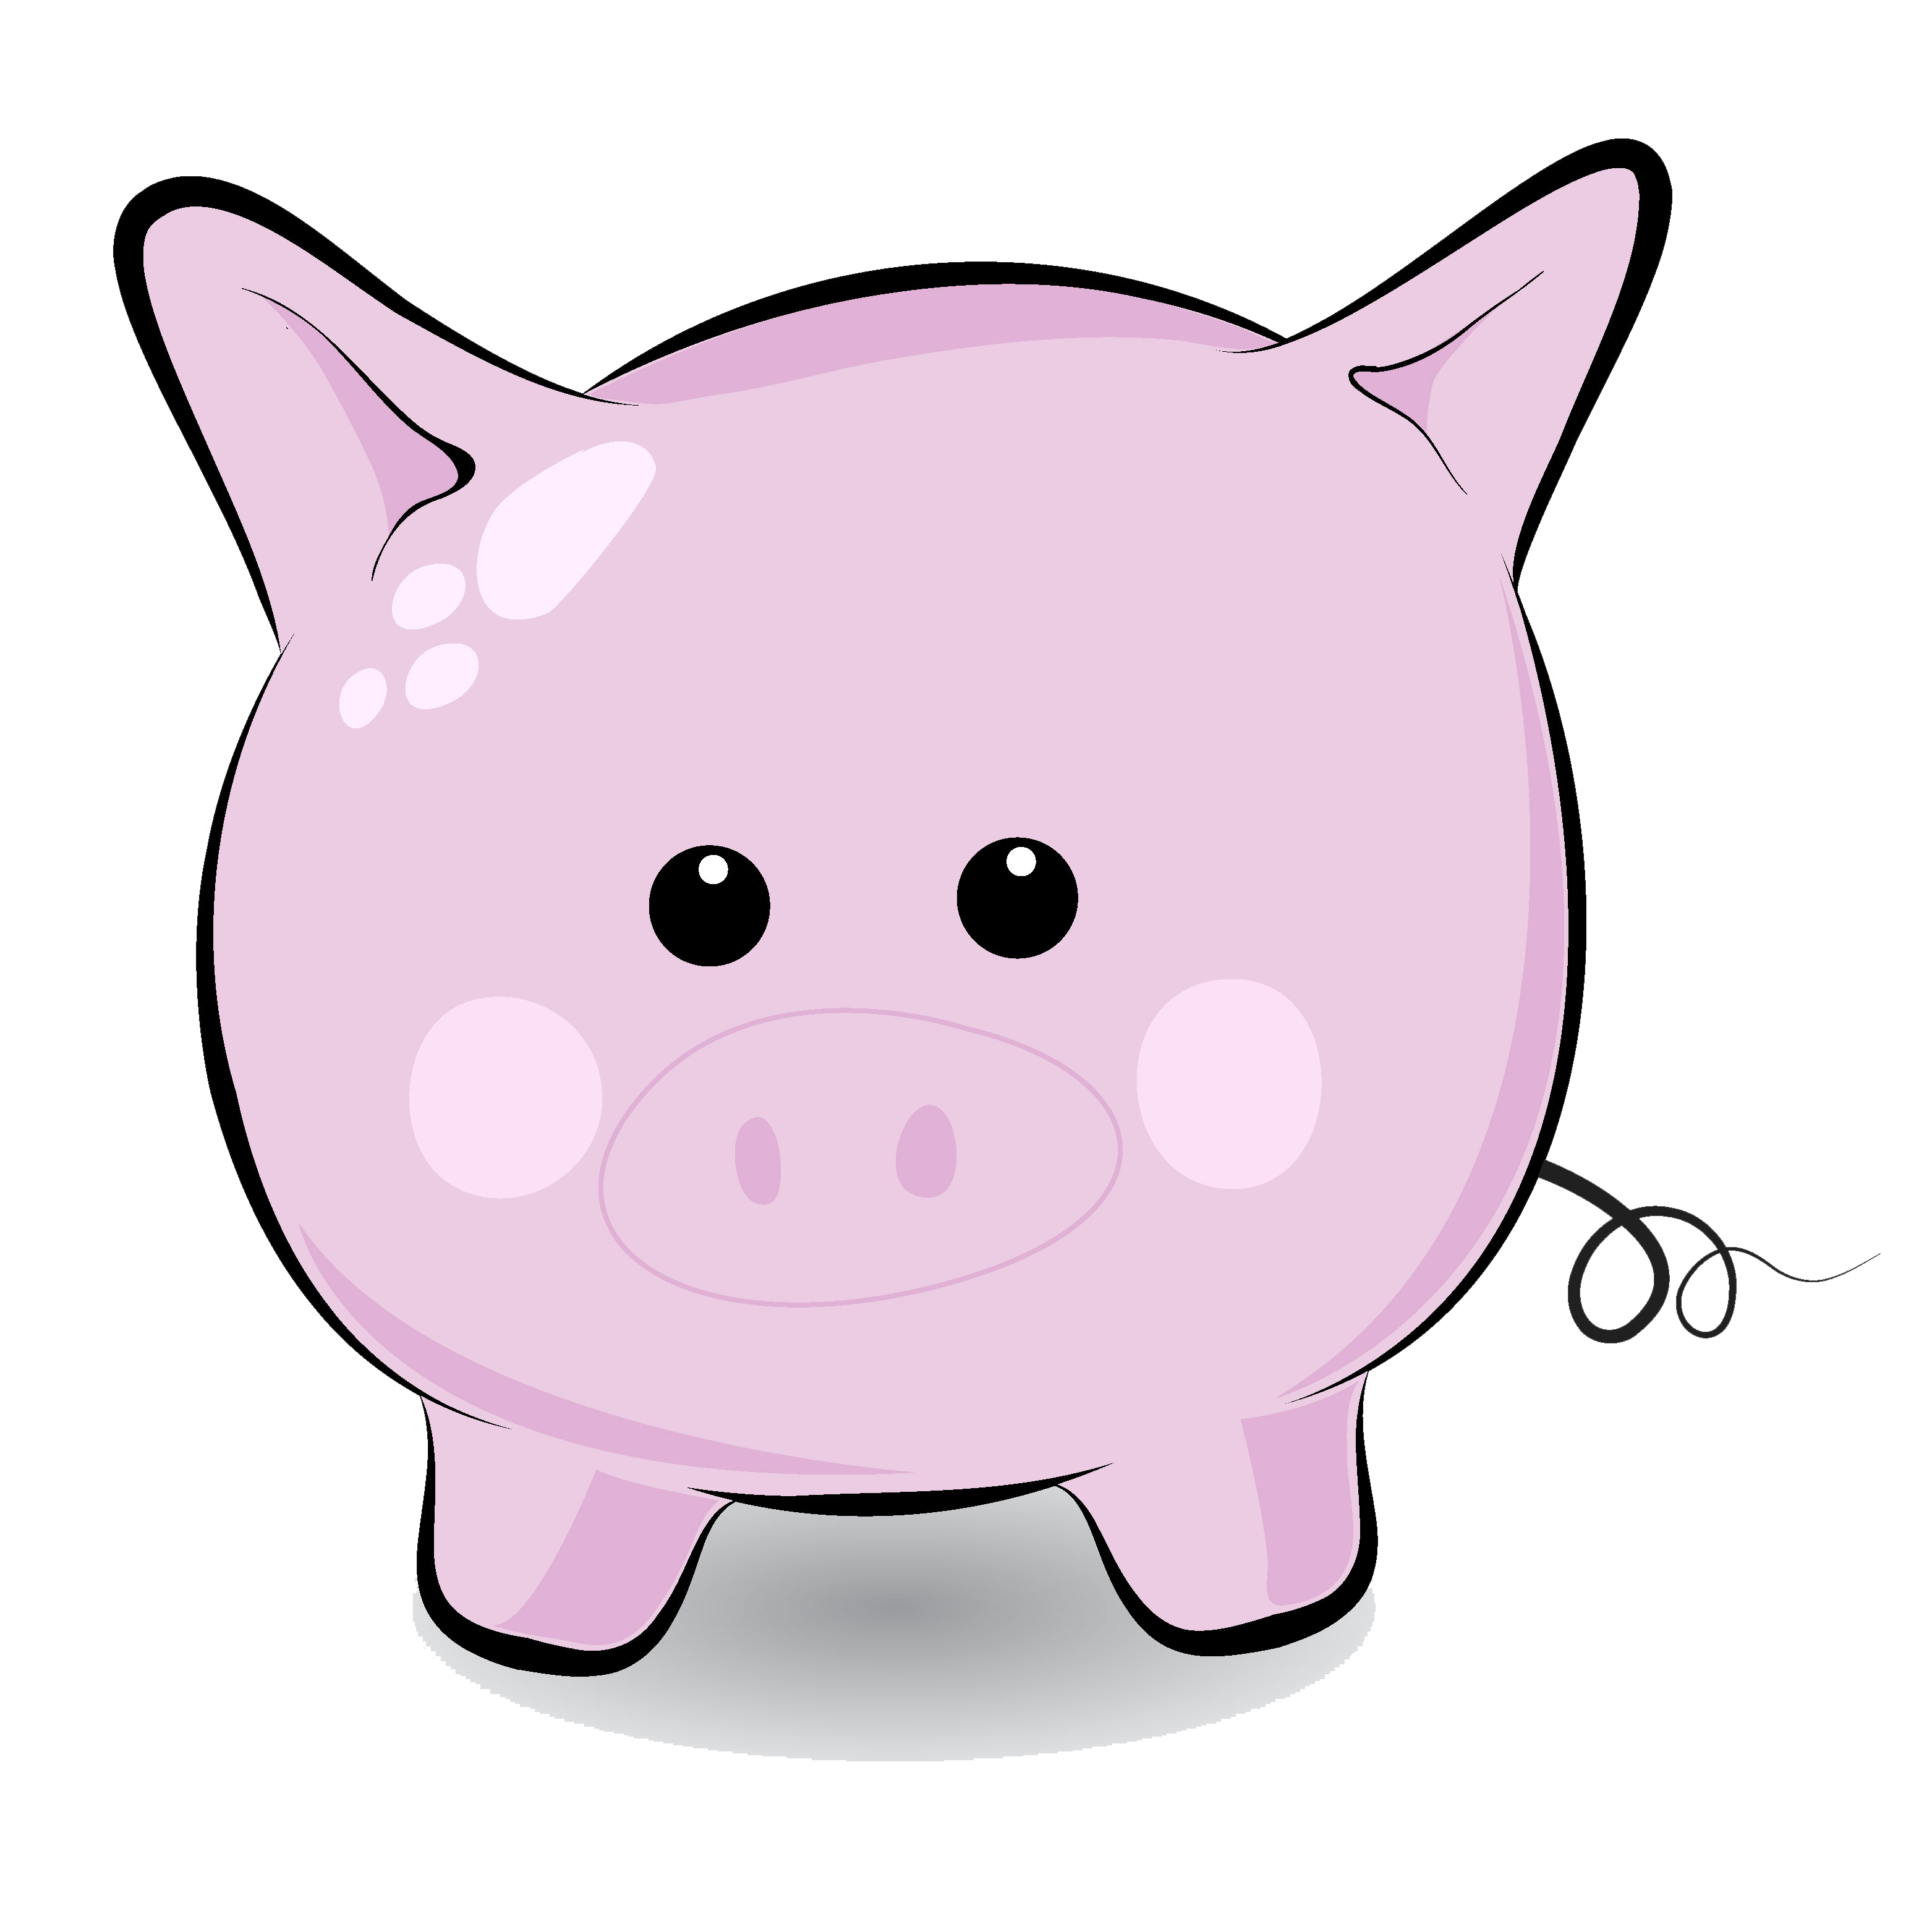 Pig clipart black and white. Panda free images